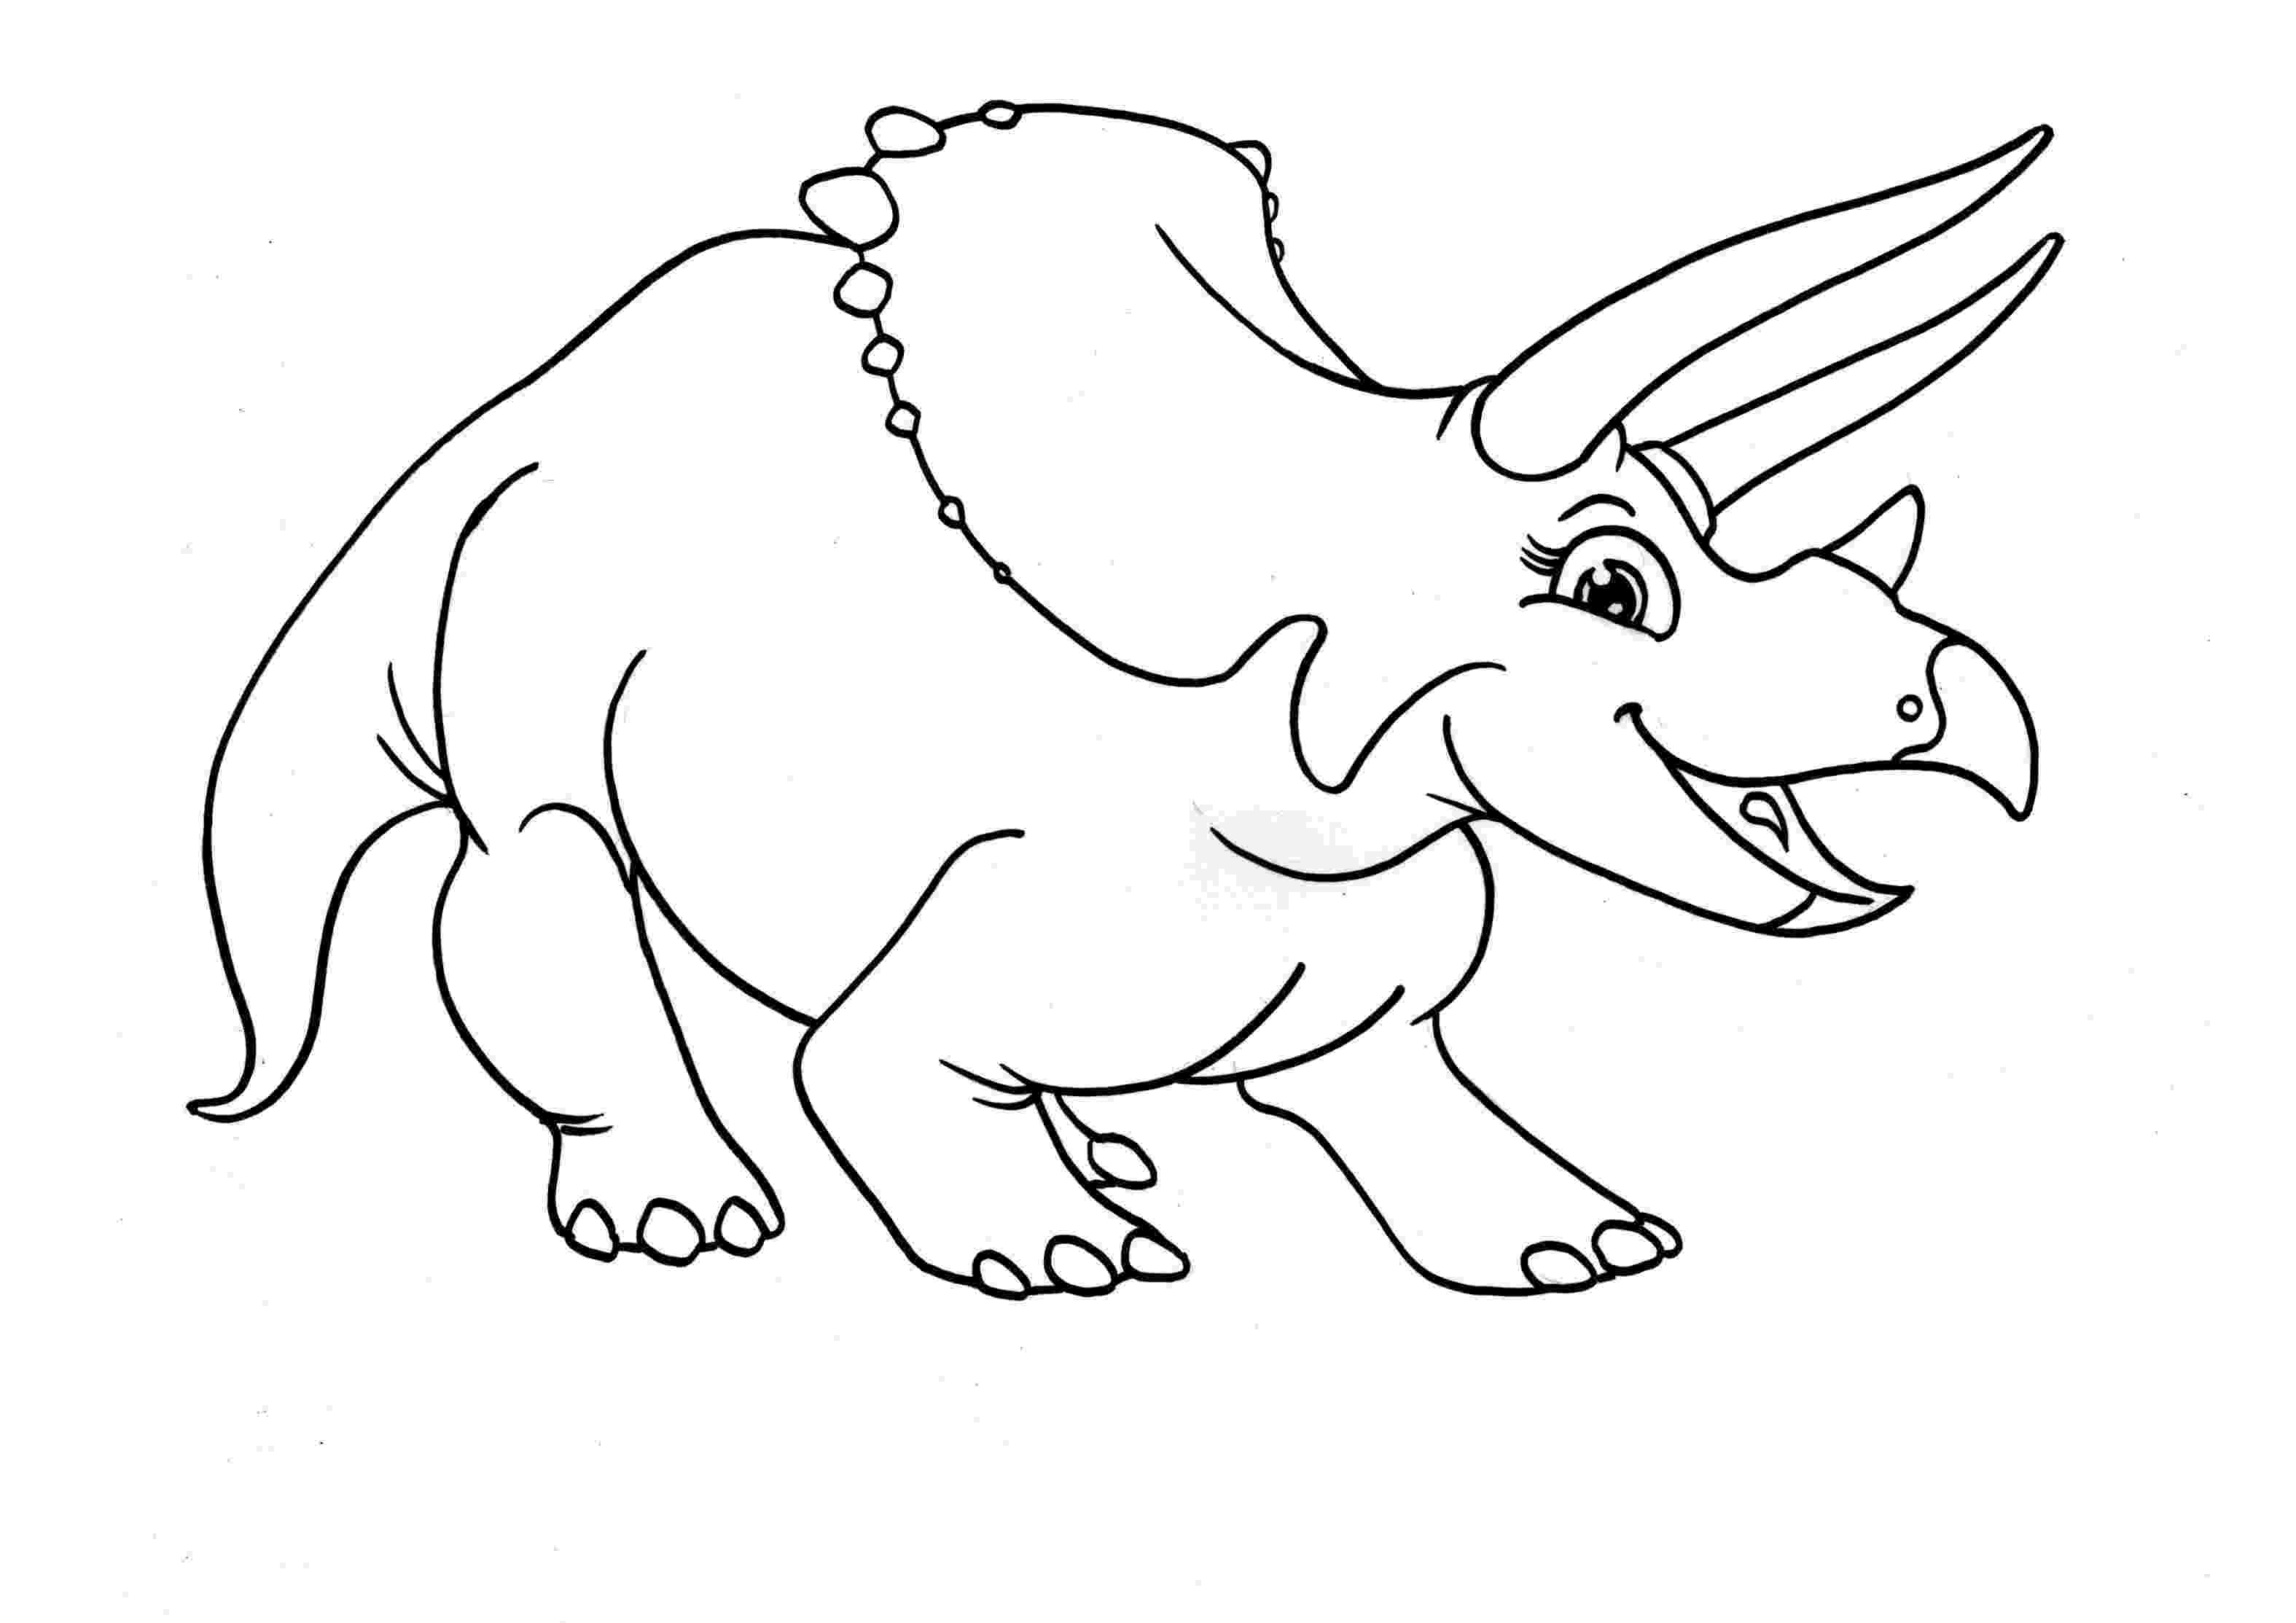 print dinosaur pictures free printable triceratops coloring pages for kids pictures print dinosaur